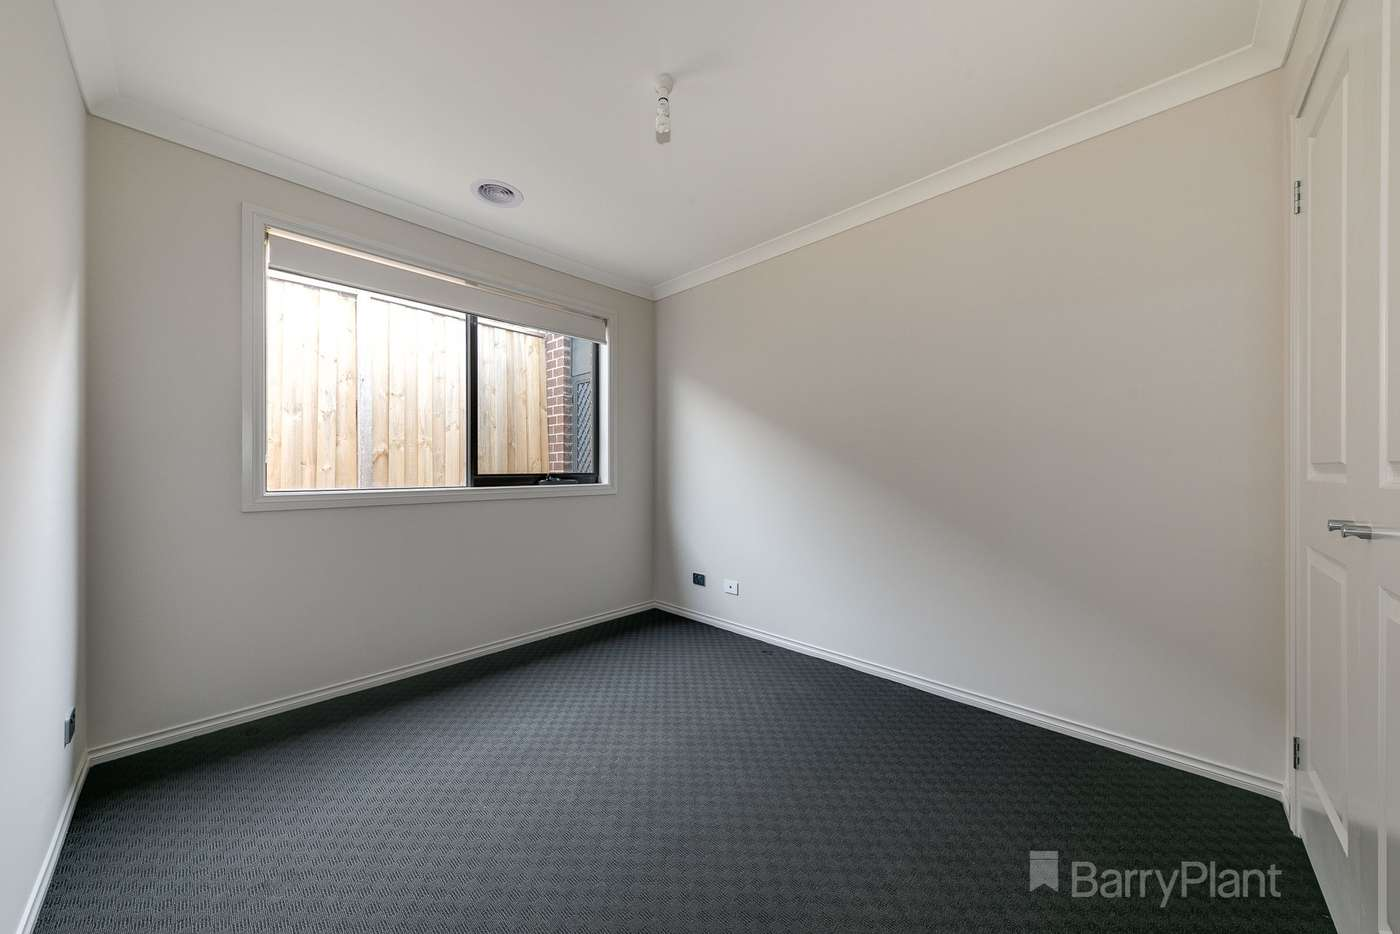 Sixth view of Homely house listing, 10 Sallen Street, Clyde North VIC 3978